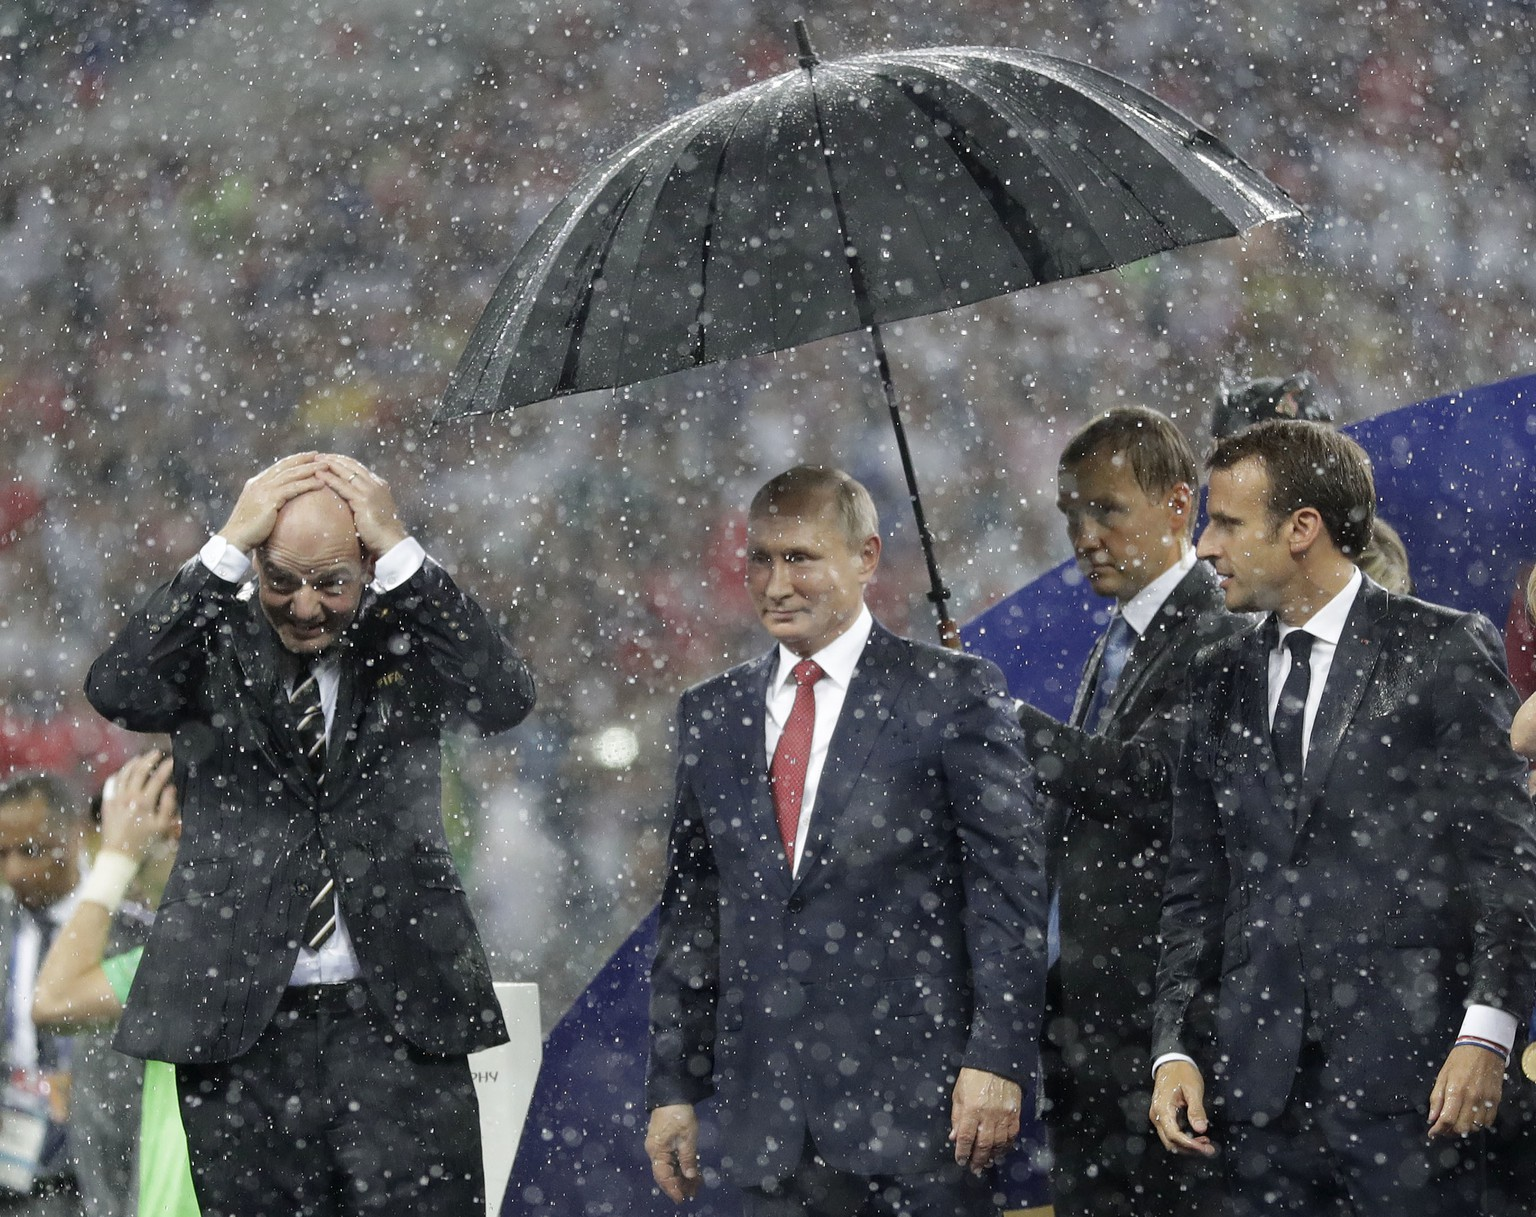 FIFA President Gianni Infantino, left, gestures as Russian President Vladimir Putin stands underneath an umbrella watched by French President Emmanuel Macron after the final match between France and Croatia at the 2018 soccer World Cup in the Luzhniki Stadium in Moscow, Russia, Sunday, July 15, 2018. France won the final 4-2. (AP Photo/Matthias Schrader)